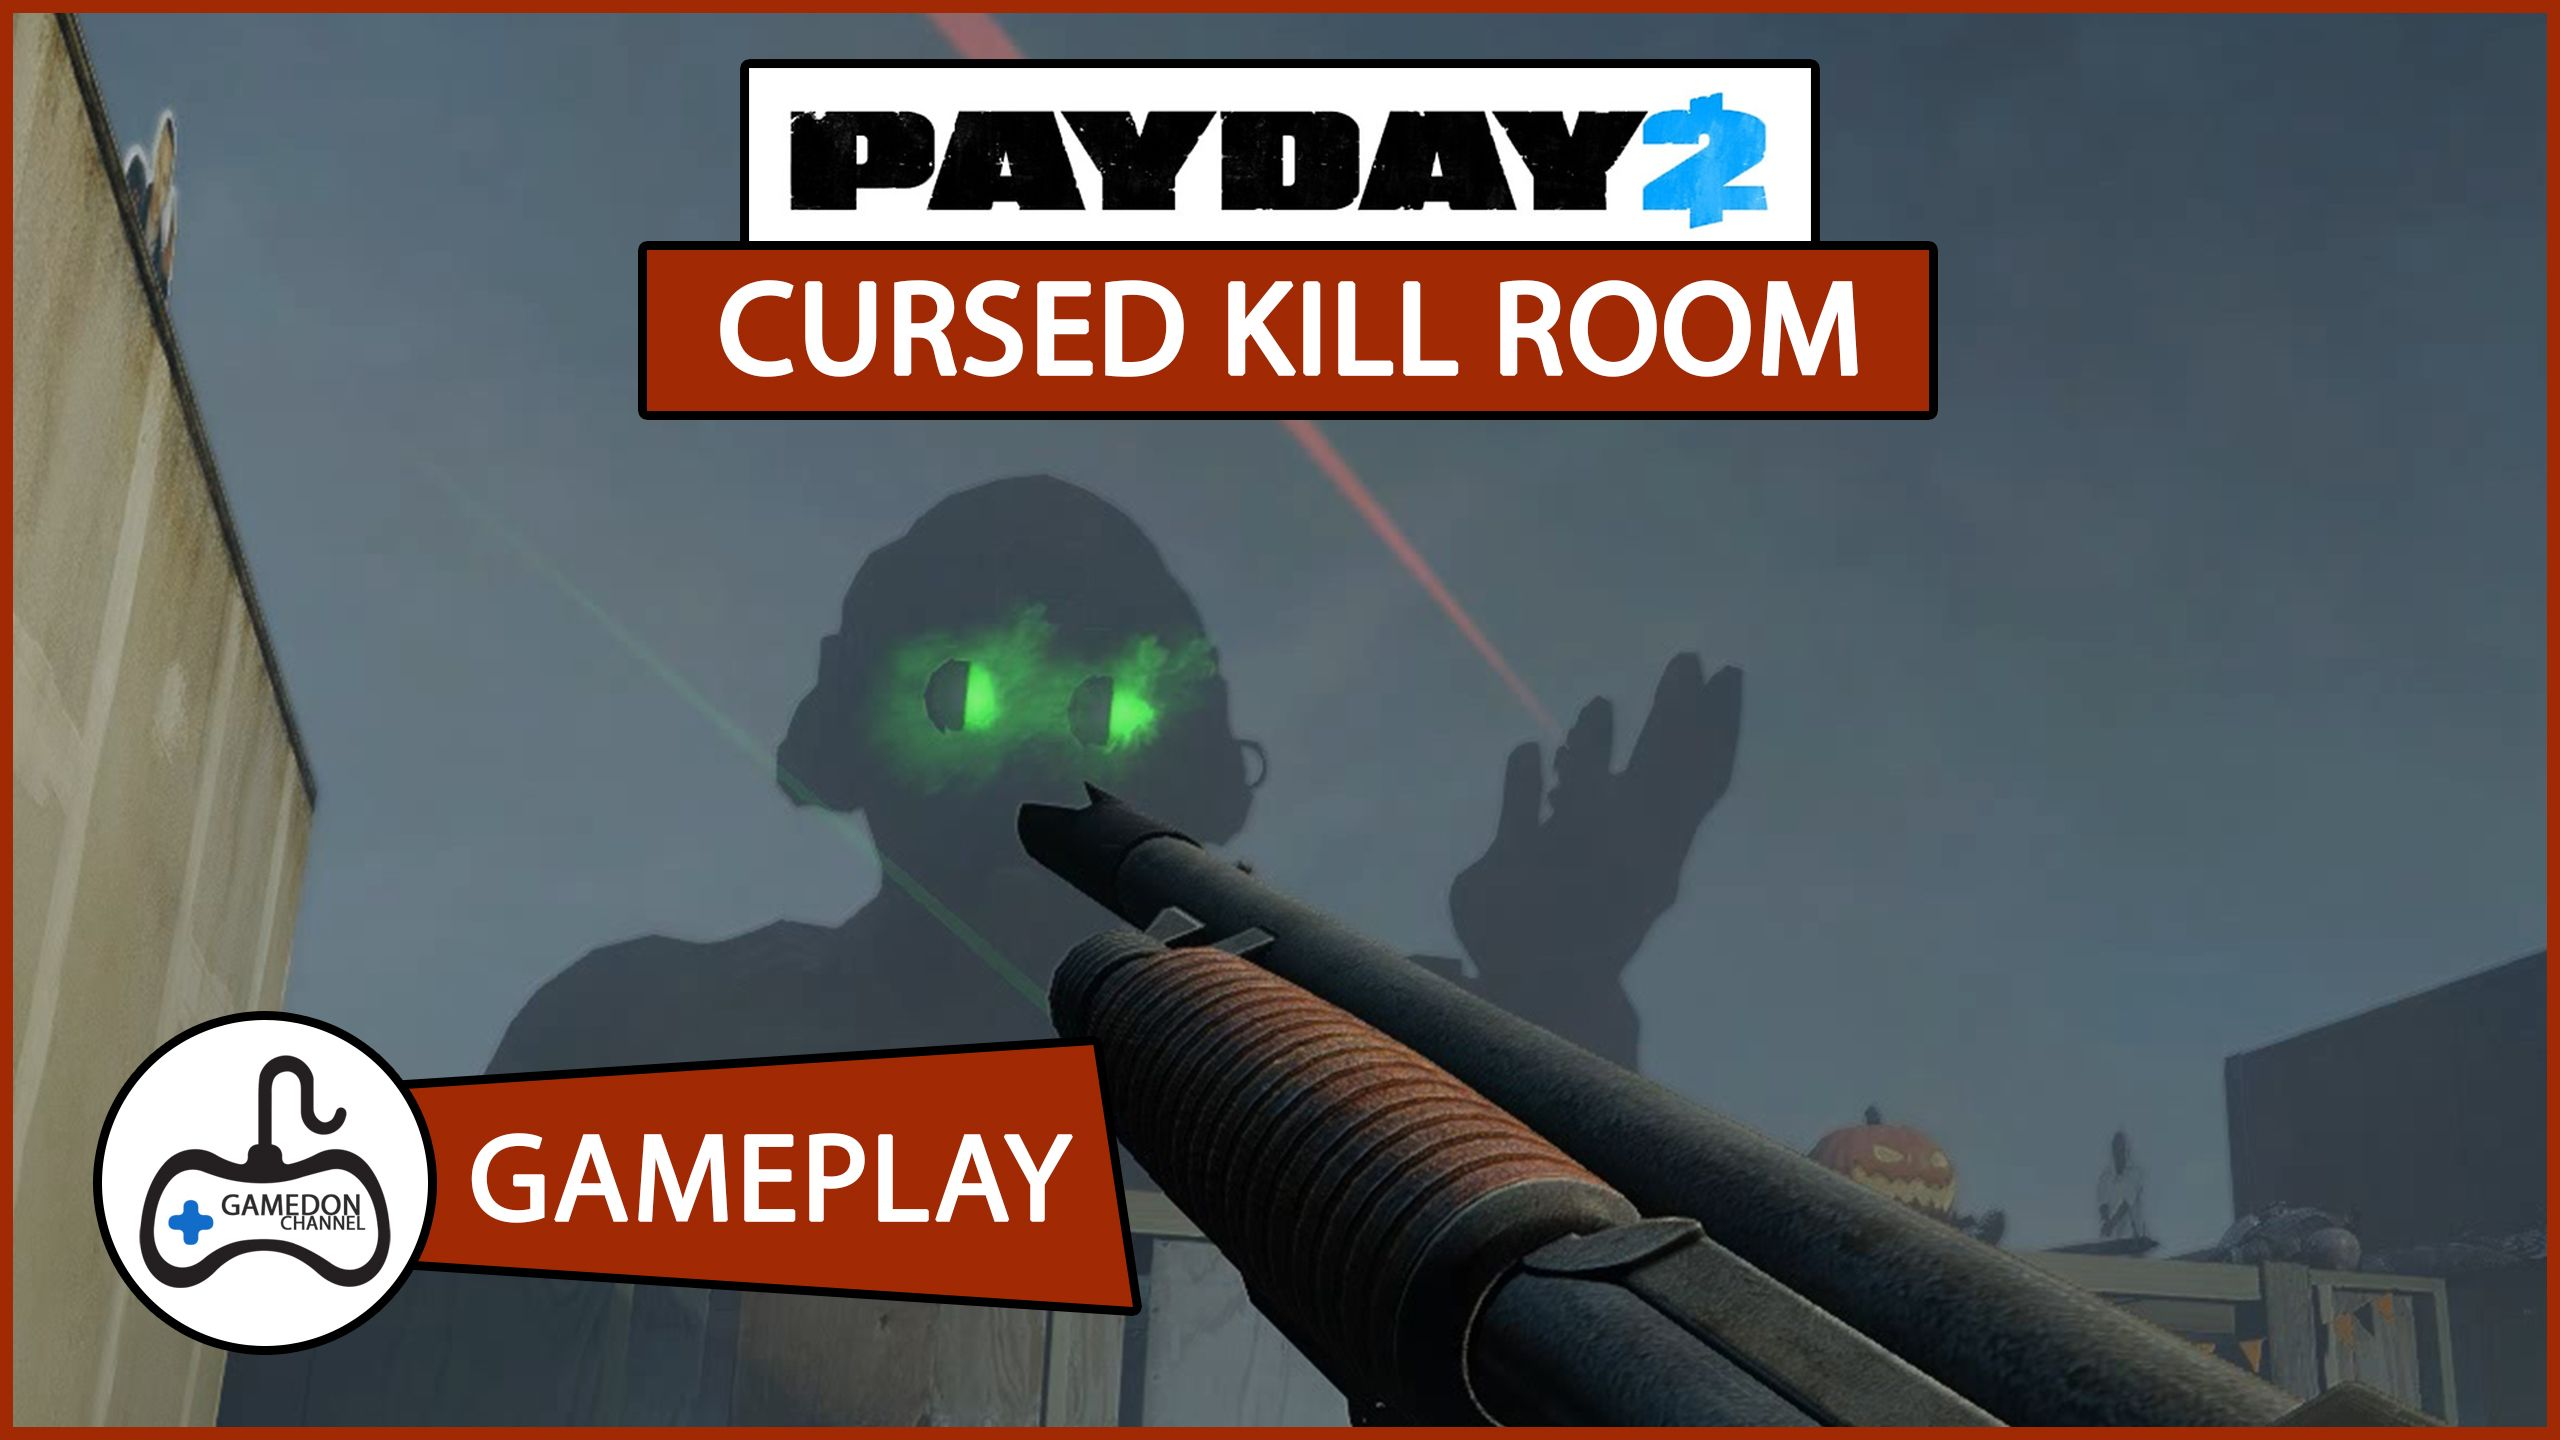 Let's Play Game! Payday 2 Cursed Kill Room  #payday2